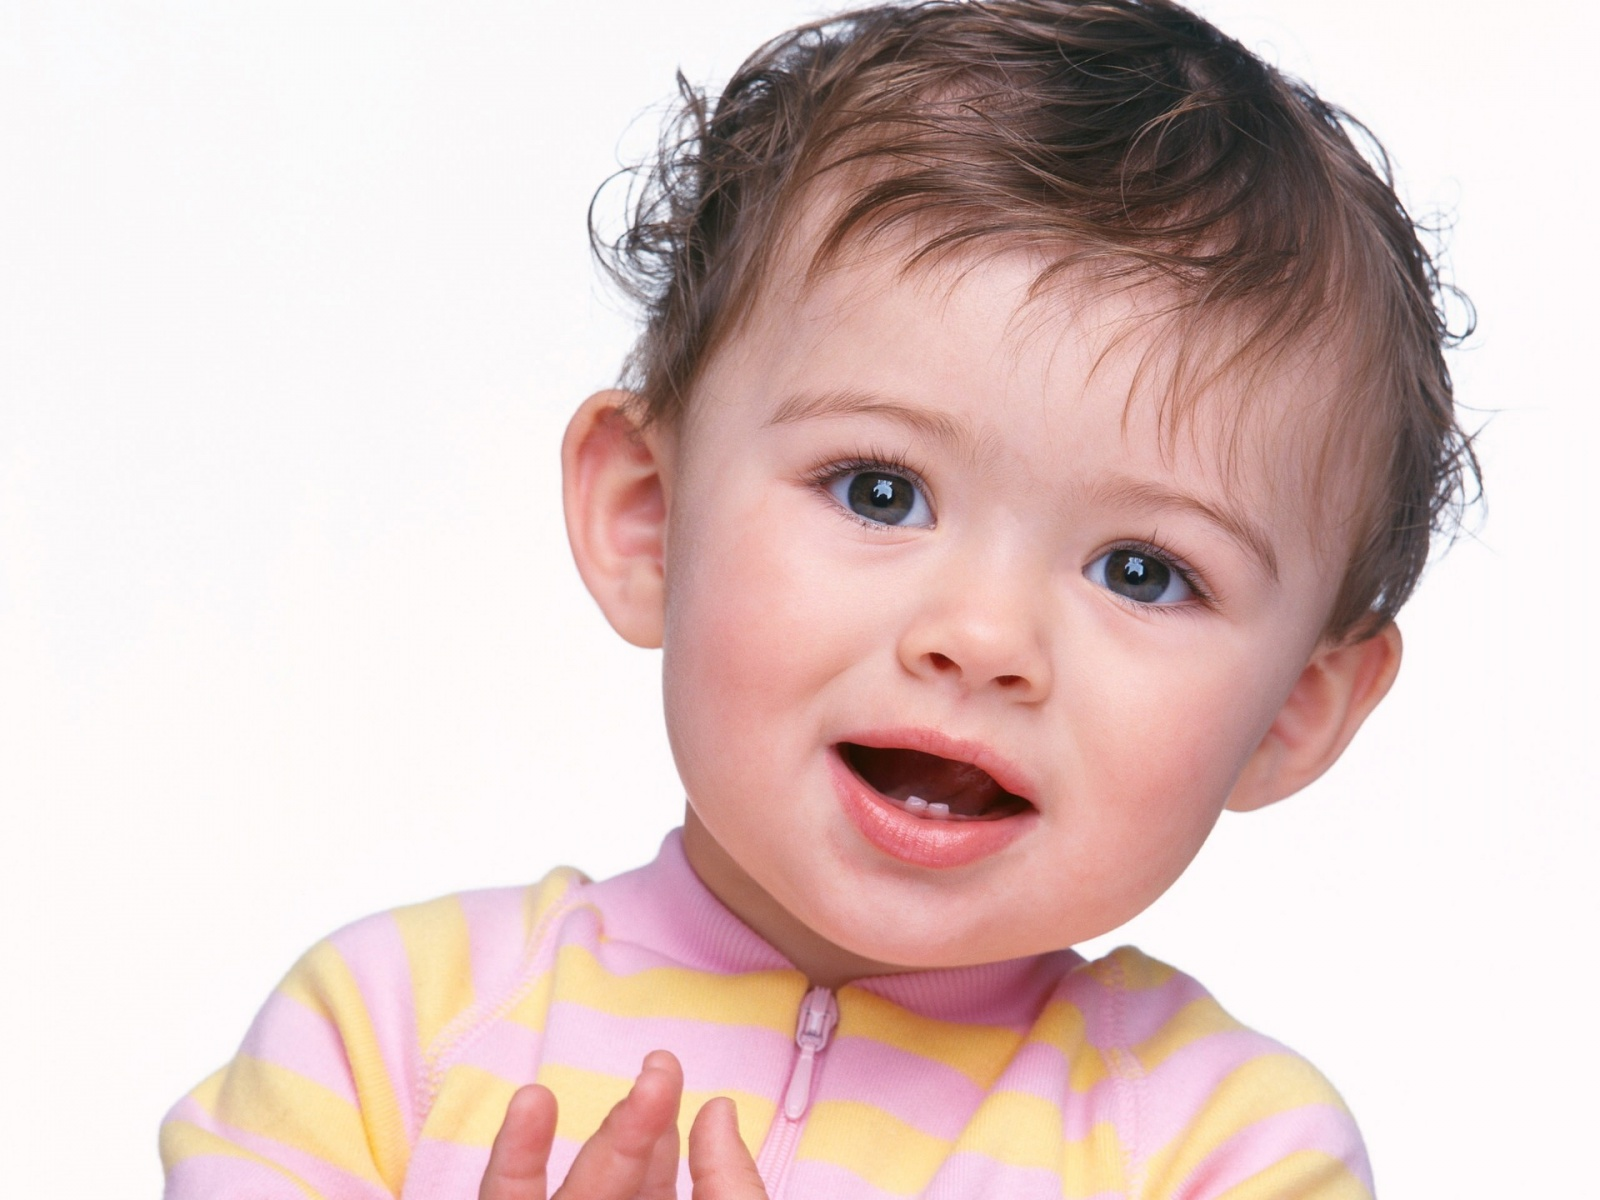 Cute little babies hq 2 wallpapers in jpg format for free download cute little babies hq 2 wallpapers voltagebd Choice Image